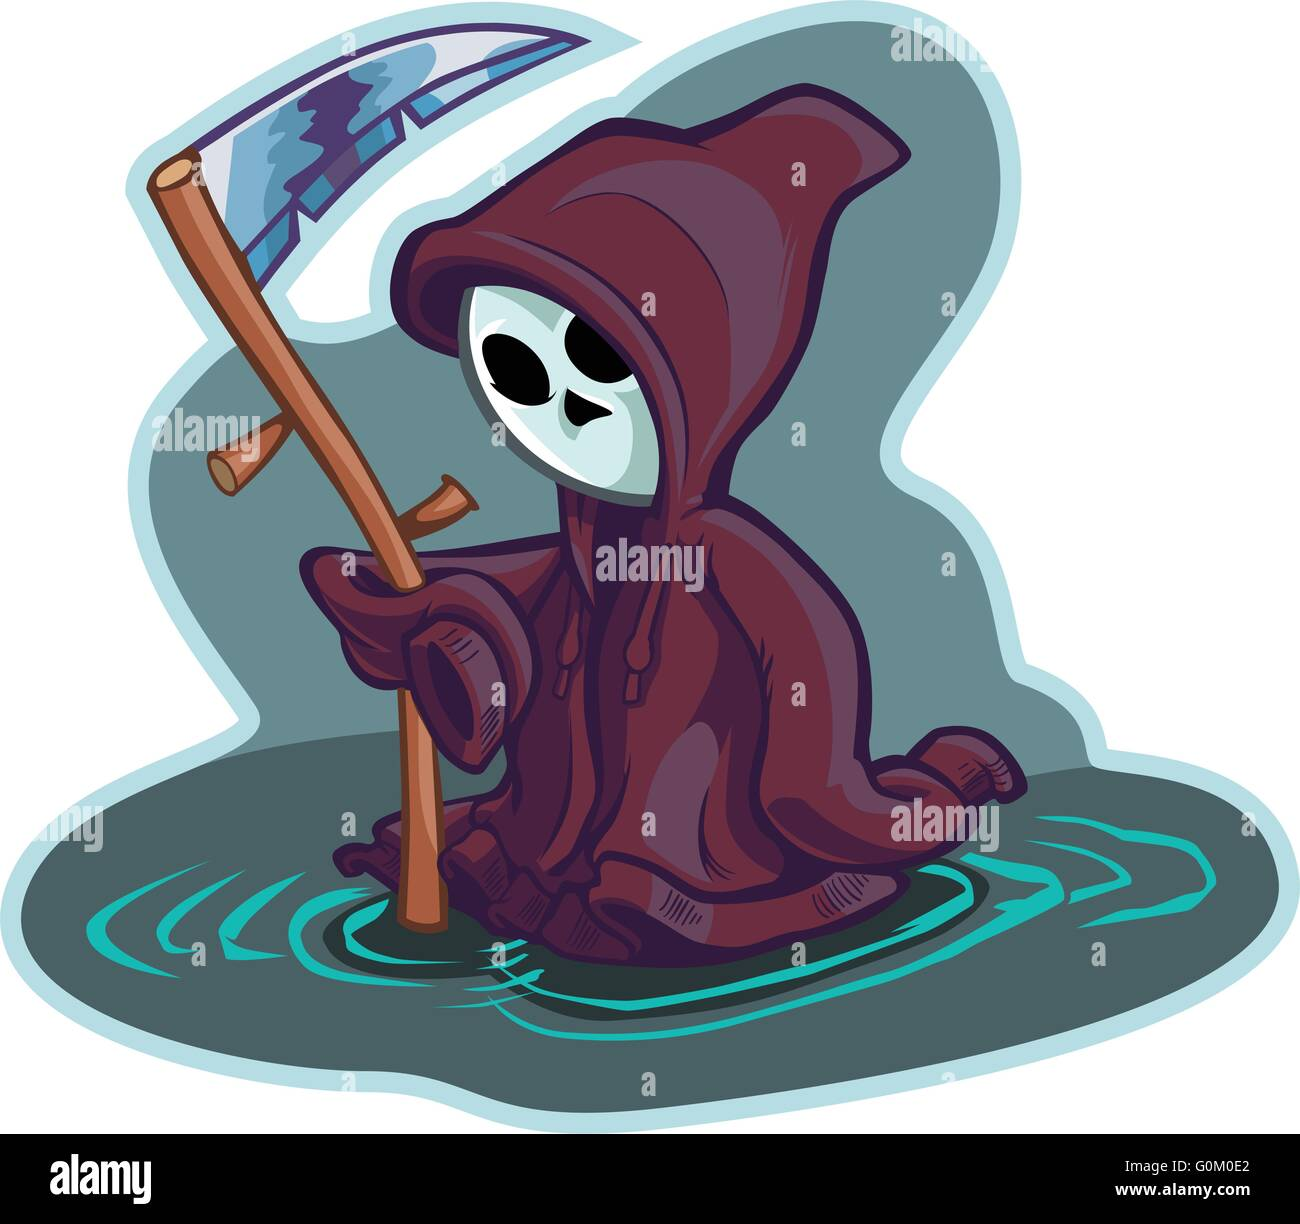 Vector cartoon clip art illustration of a cute little or young child version of death or the grim reaper, wearing Stock Vector